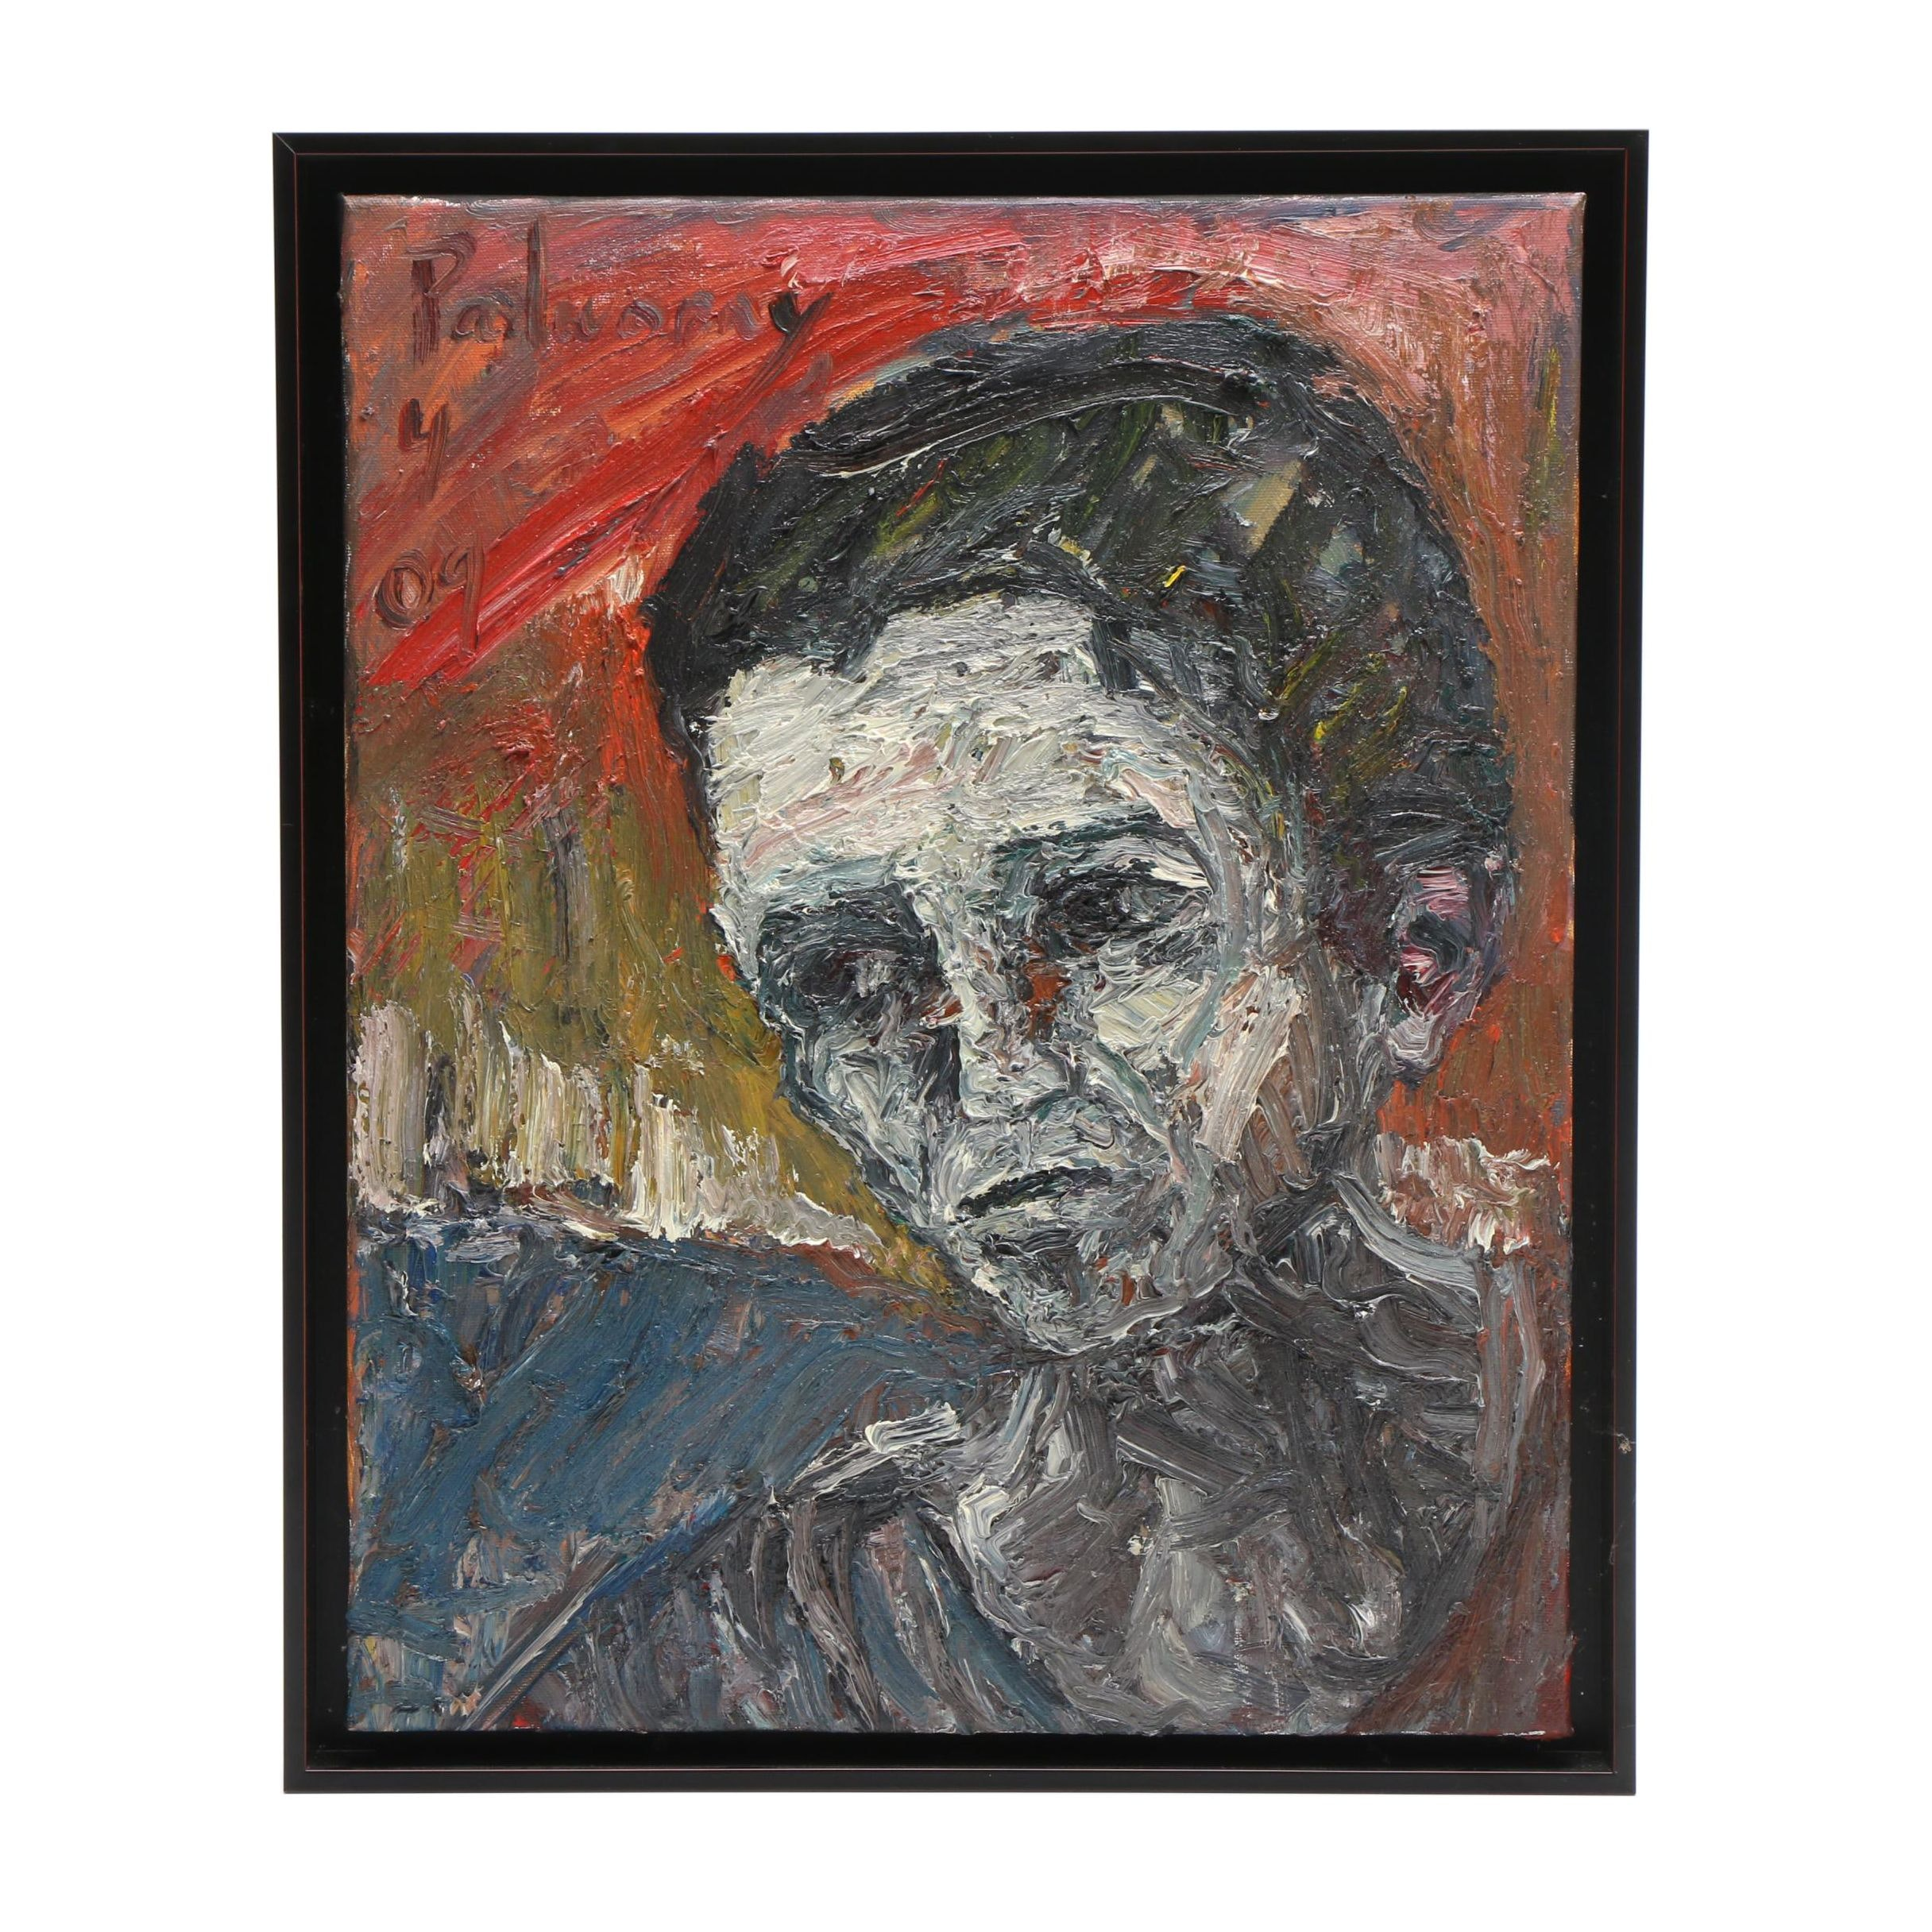 David Padworny 2009 Abstract Expressionist Style Portrait